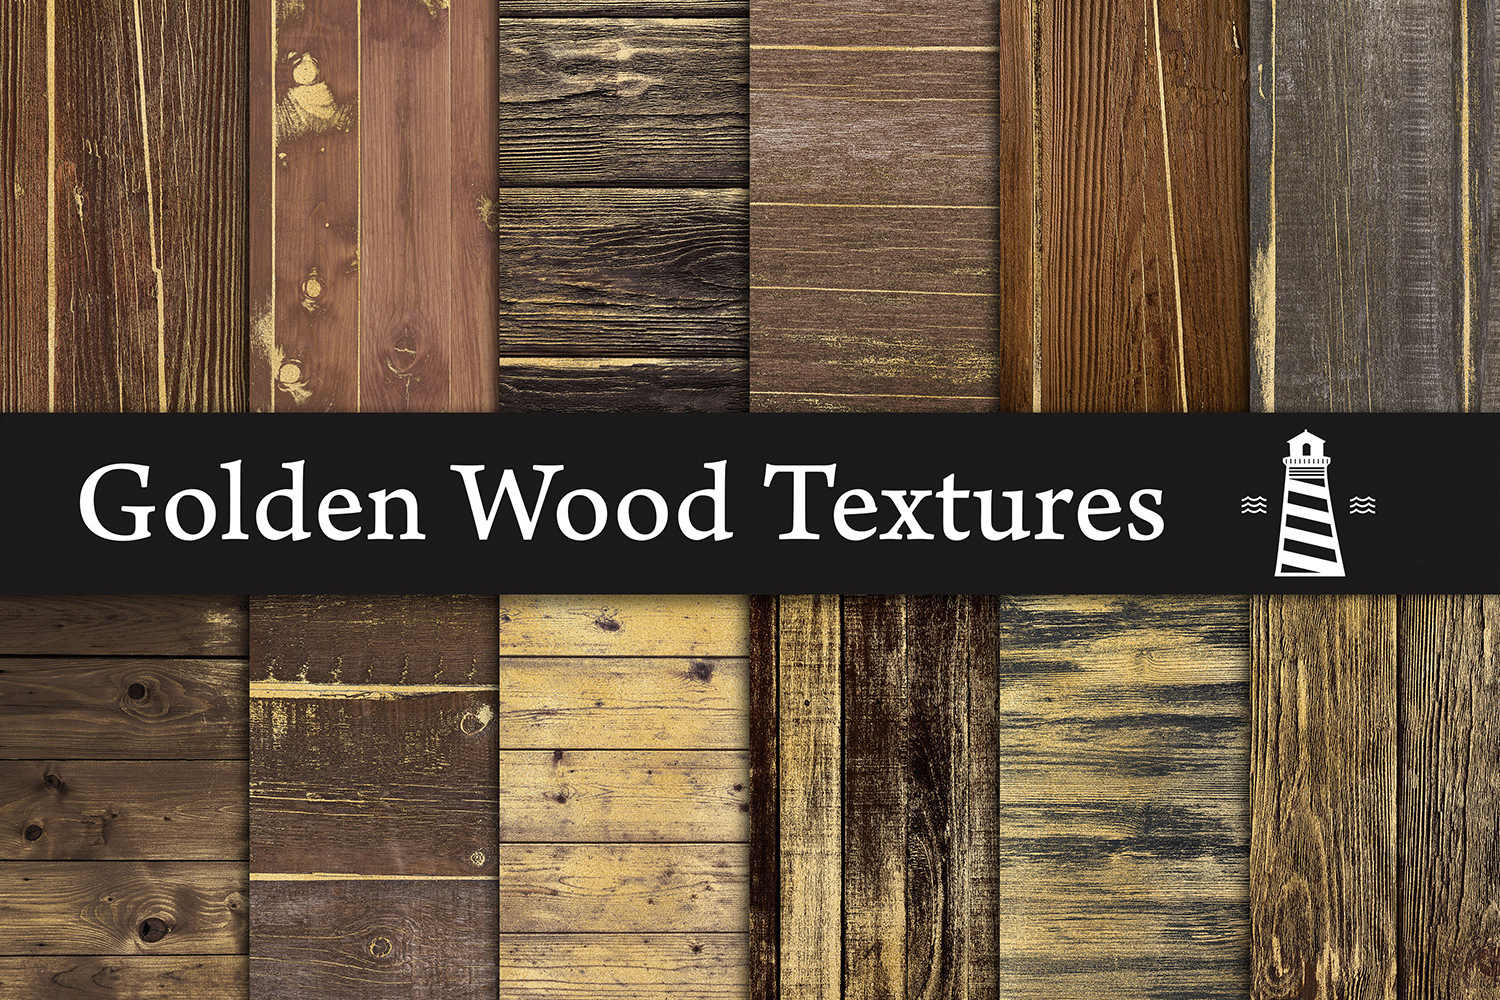 Gold Wooden Textures, Rustic Gold Wood Digital Paper example image 1